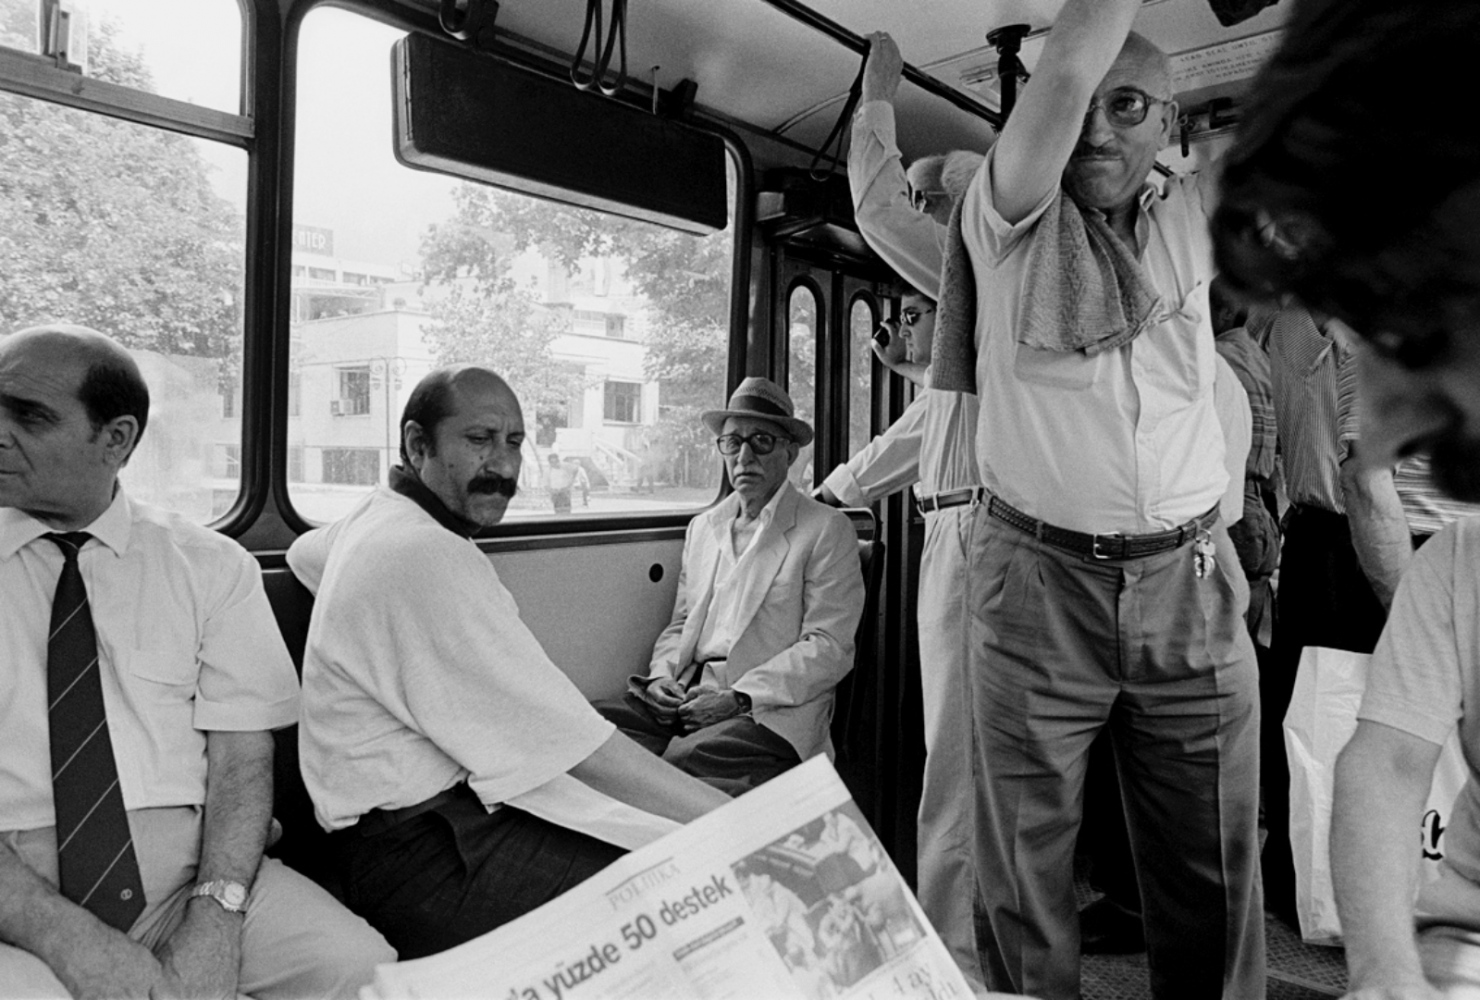 All on the Bus, Turkey, Summer 1997